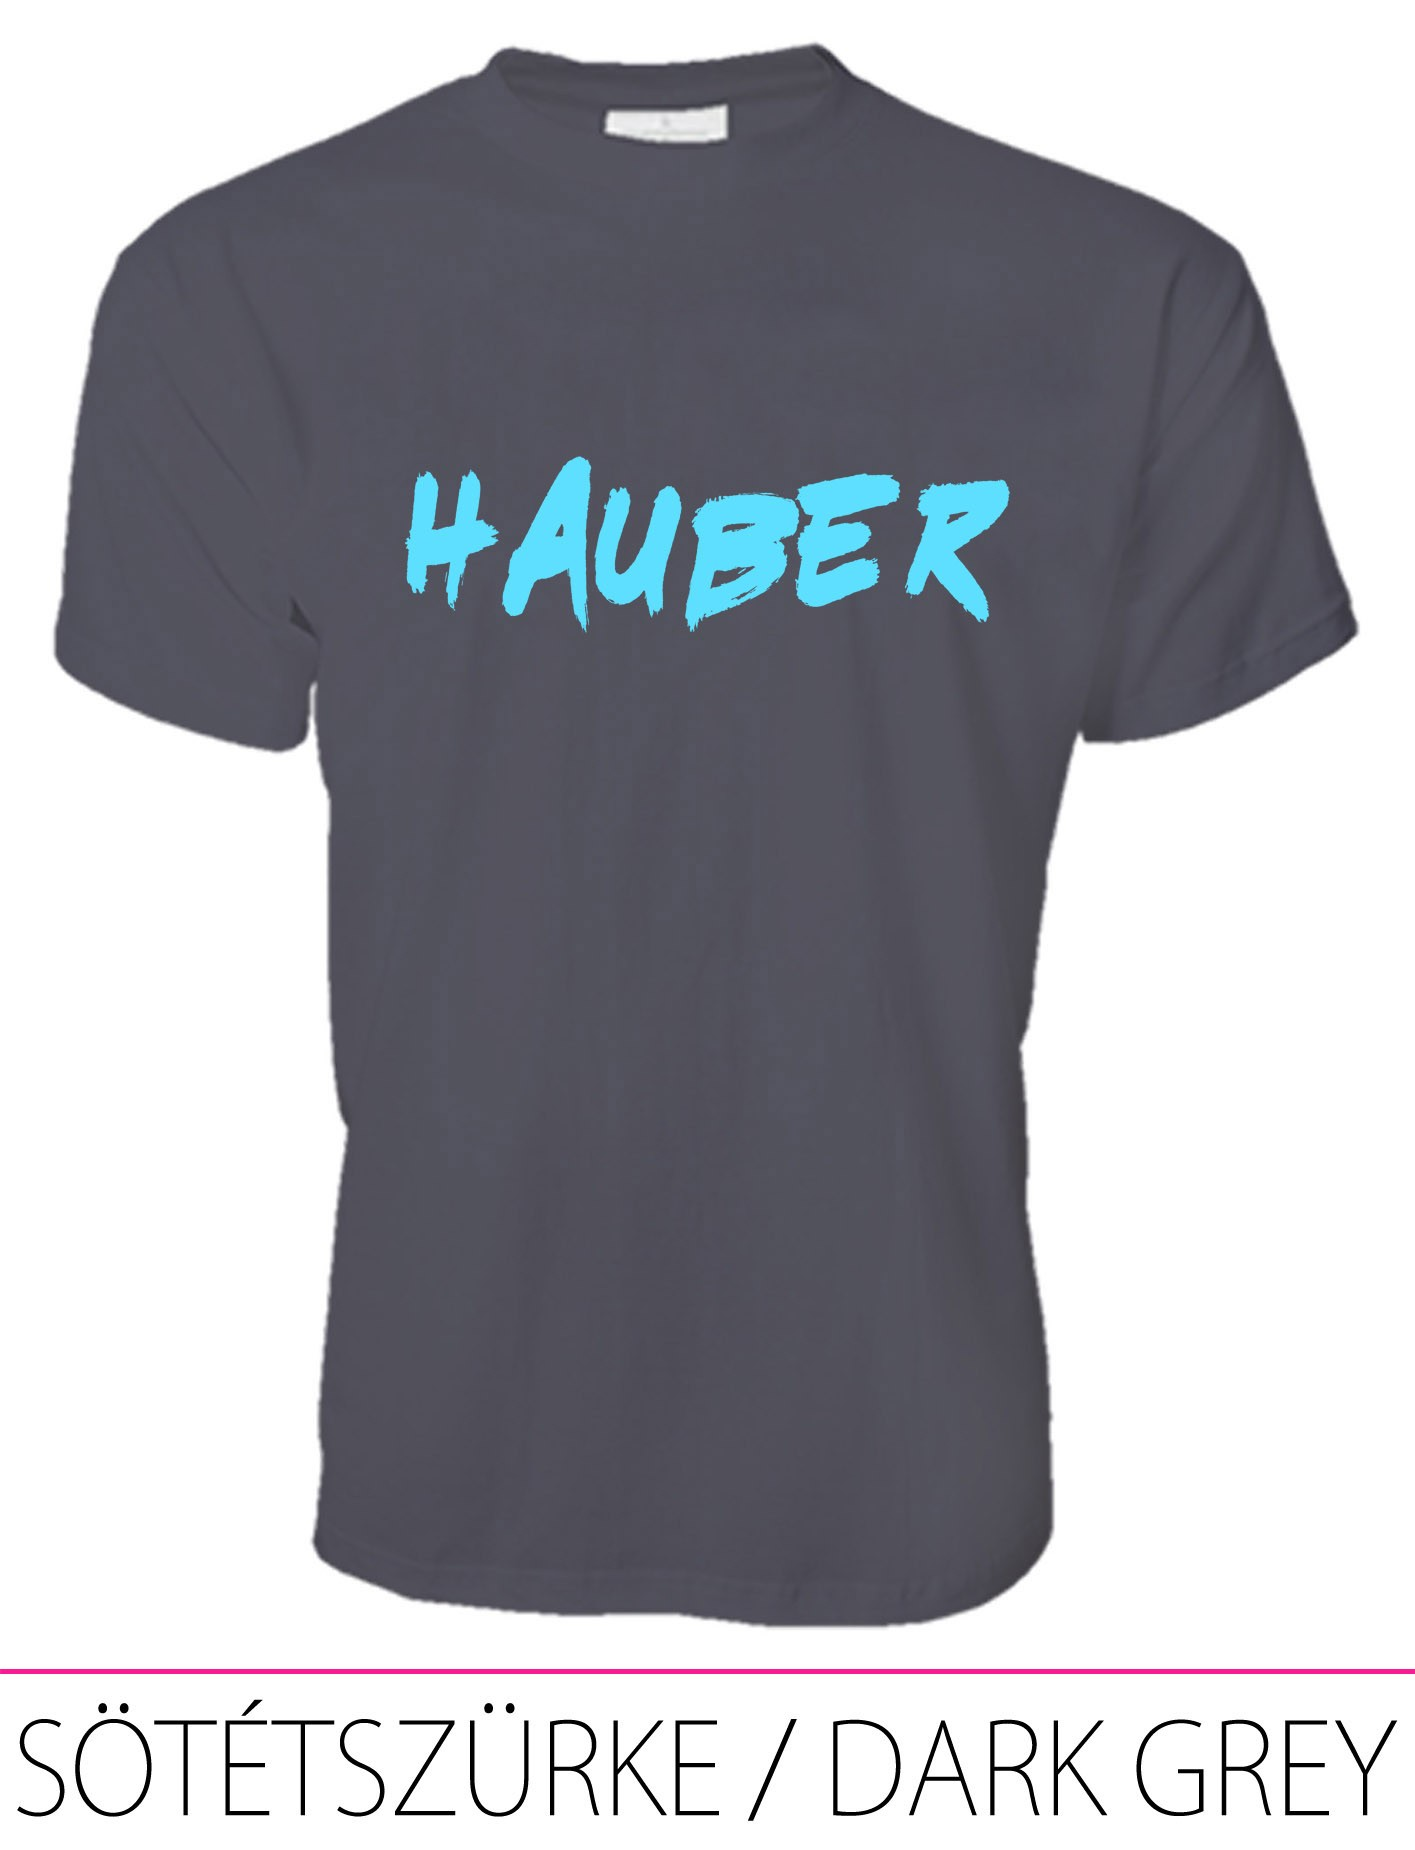 MEN PREMIUM CREW NECK T-SHIRT HAUBER DARK GREY